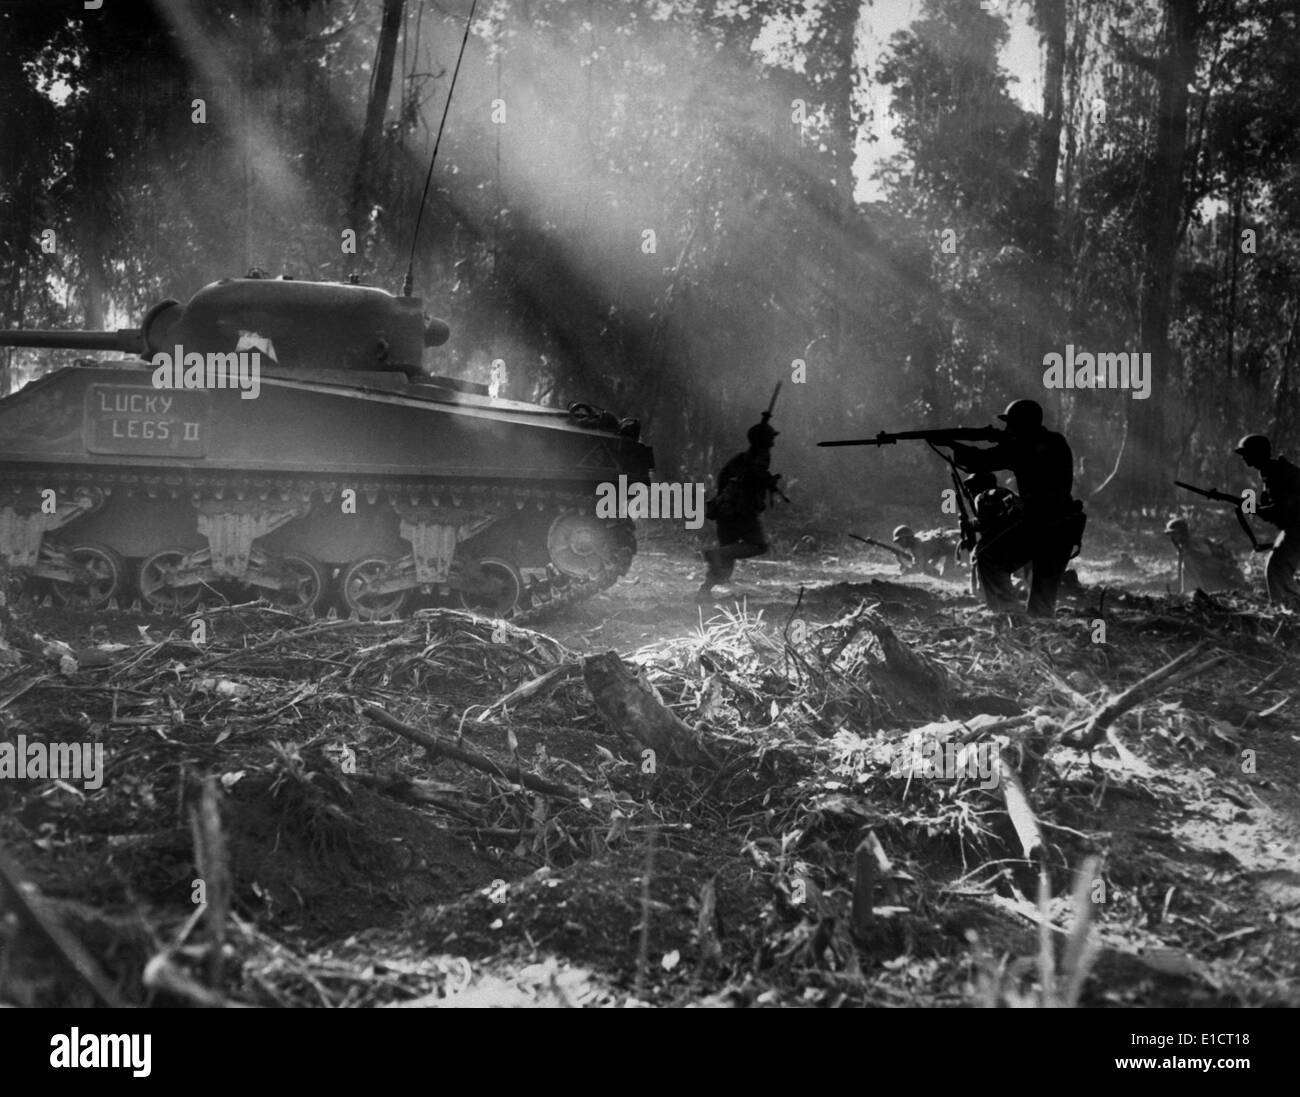 U.S. soldiers advance in the cover of a tank on Bougainville, March 1944. At night Japanese troops would infiltrate American - Stock Image